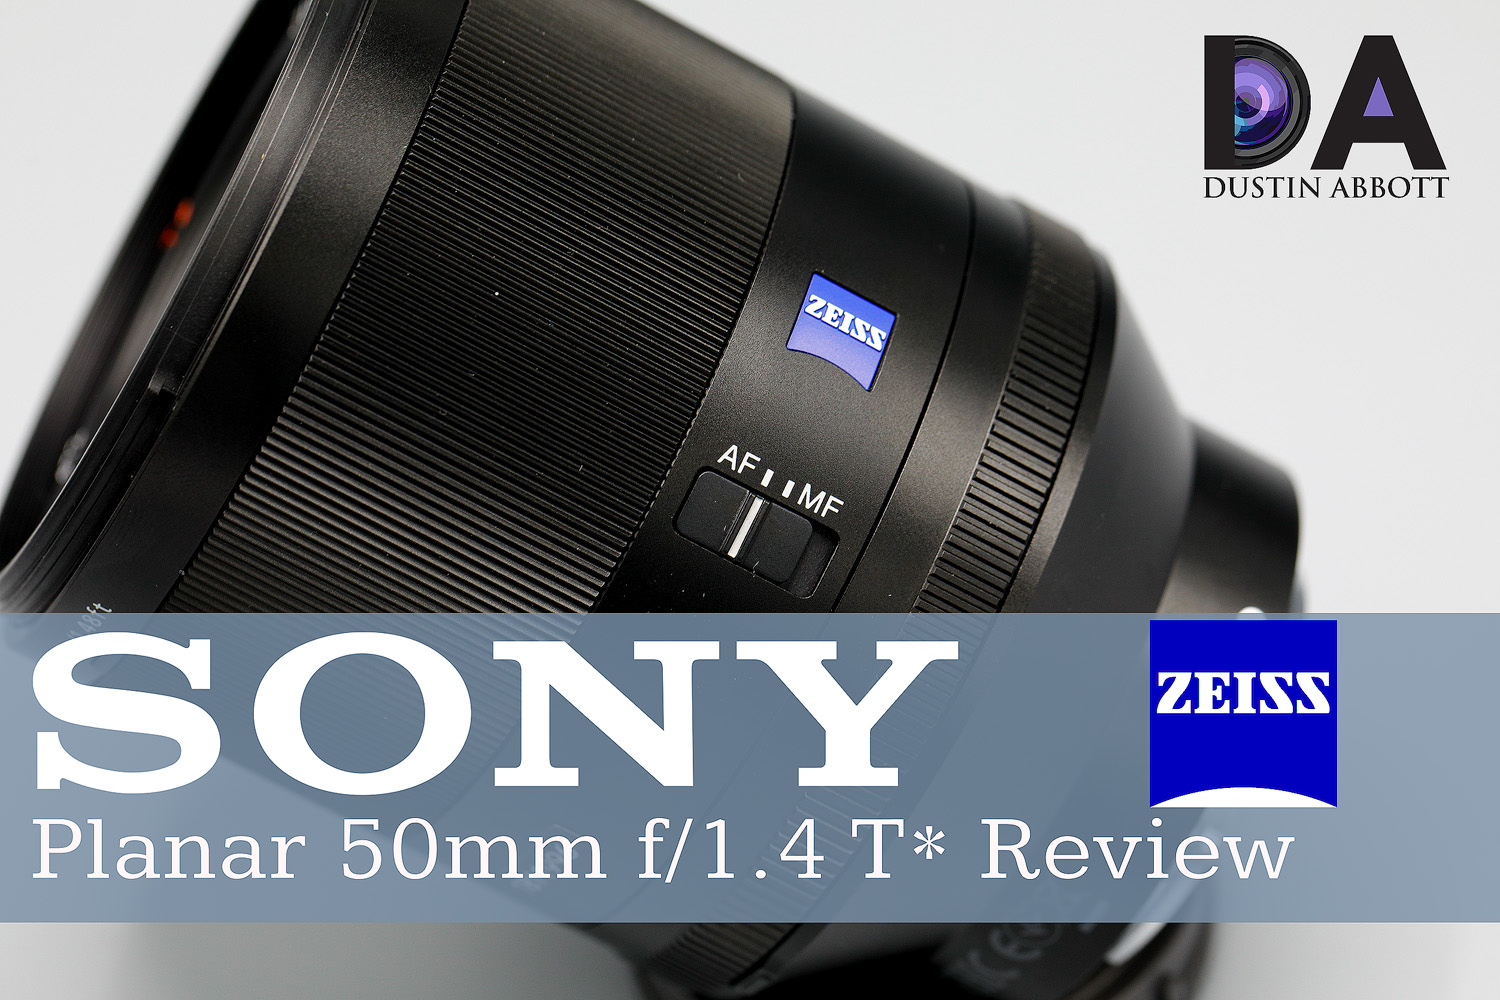 Sony Zeiss 50mm f/1 4 Planar T* Review - DustinAbbott net